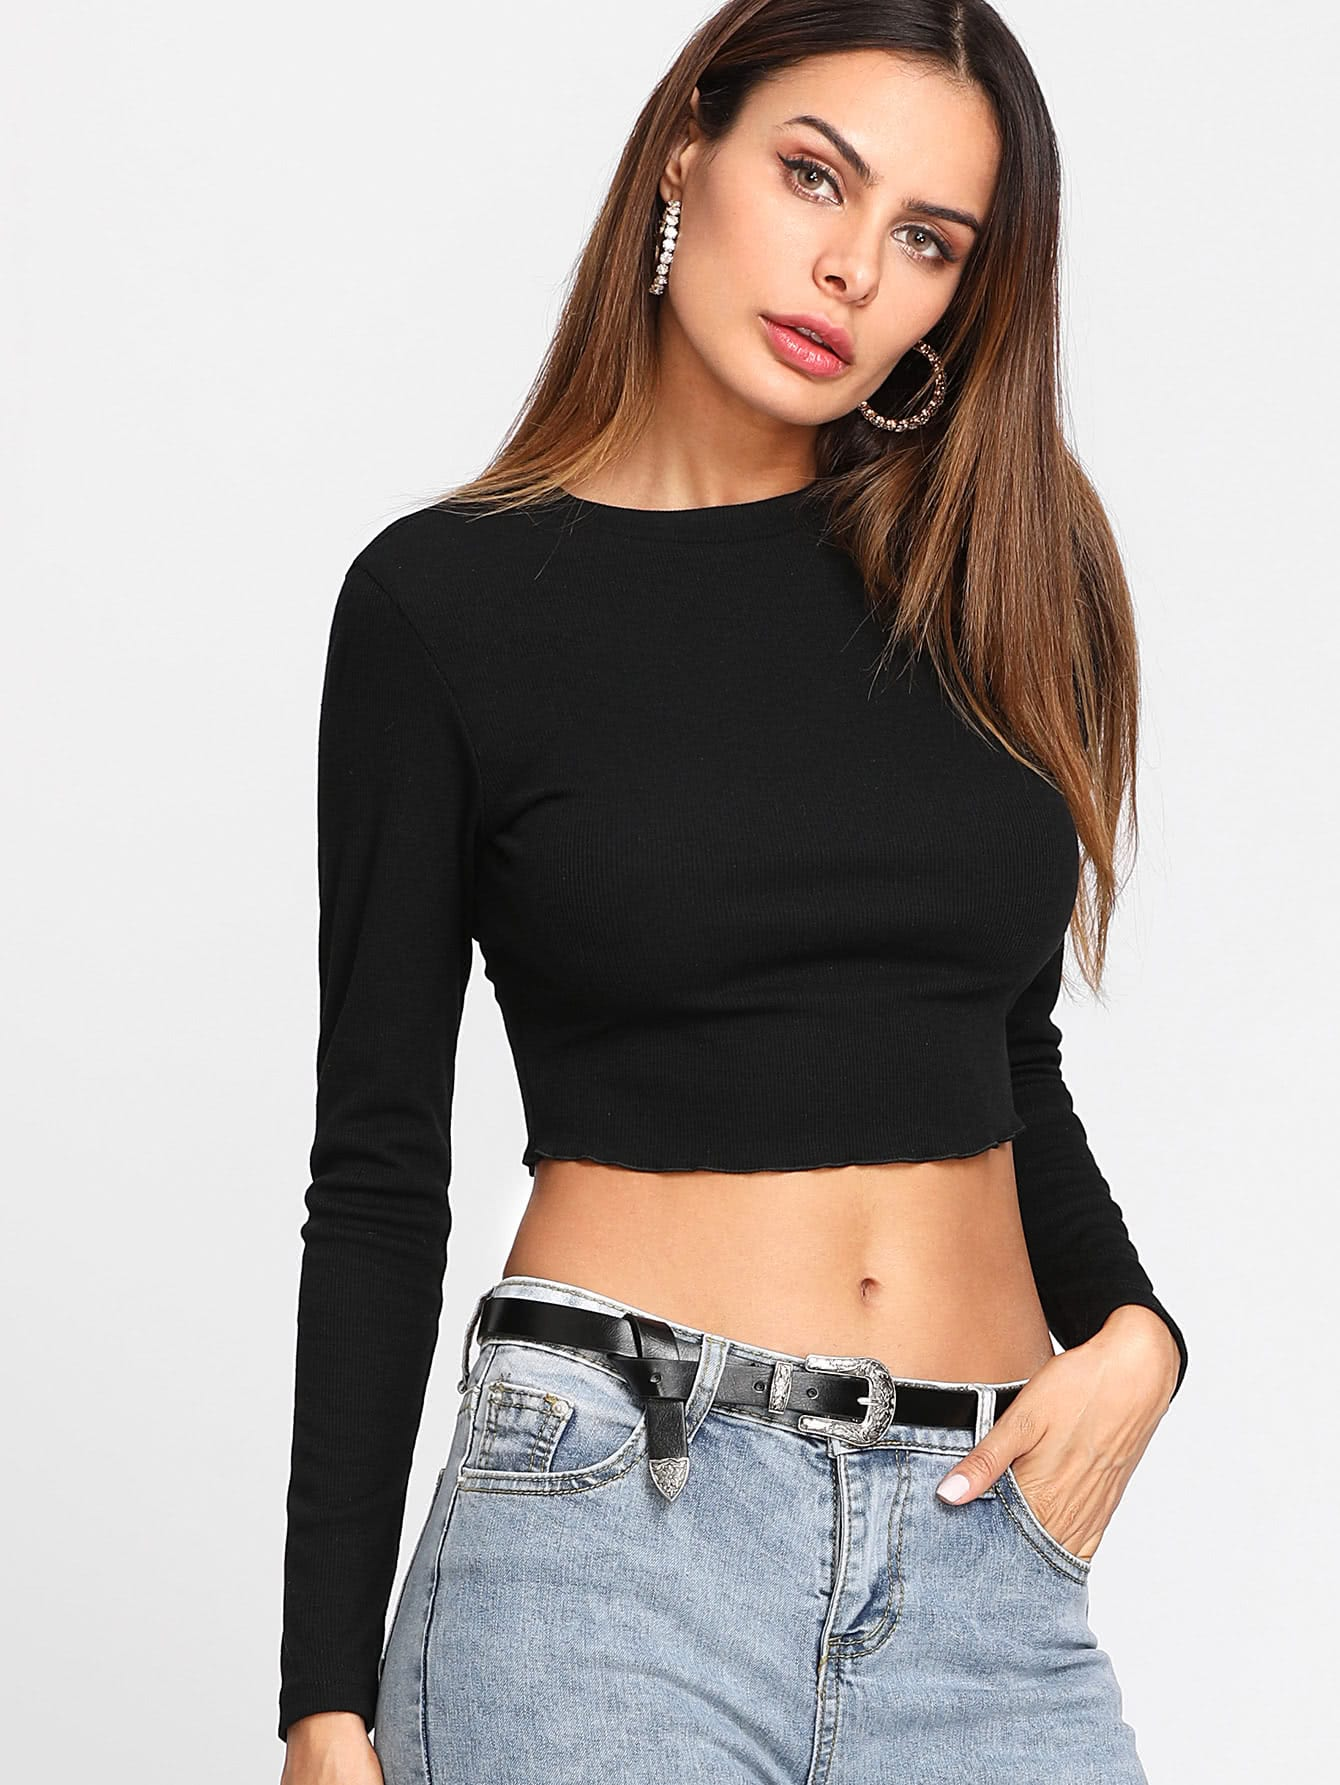 Ribbed Crop Tee tee171115071